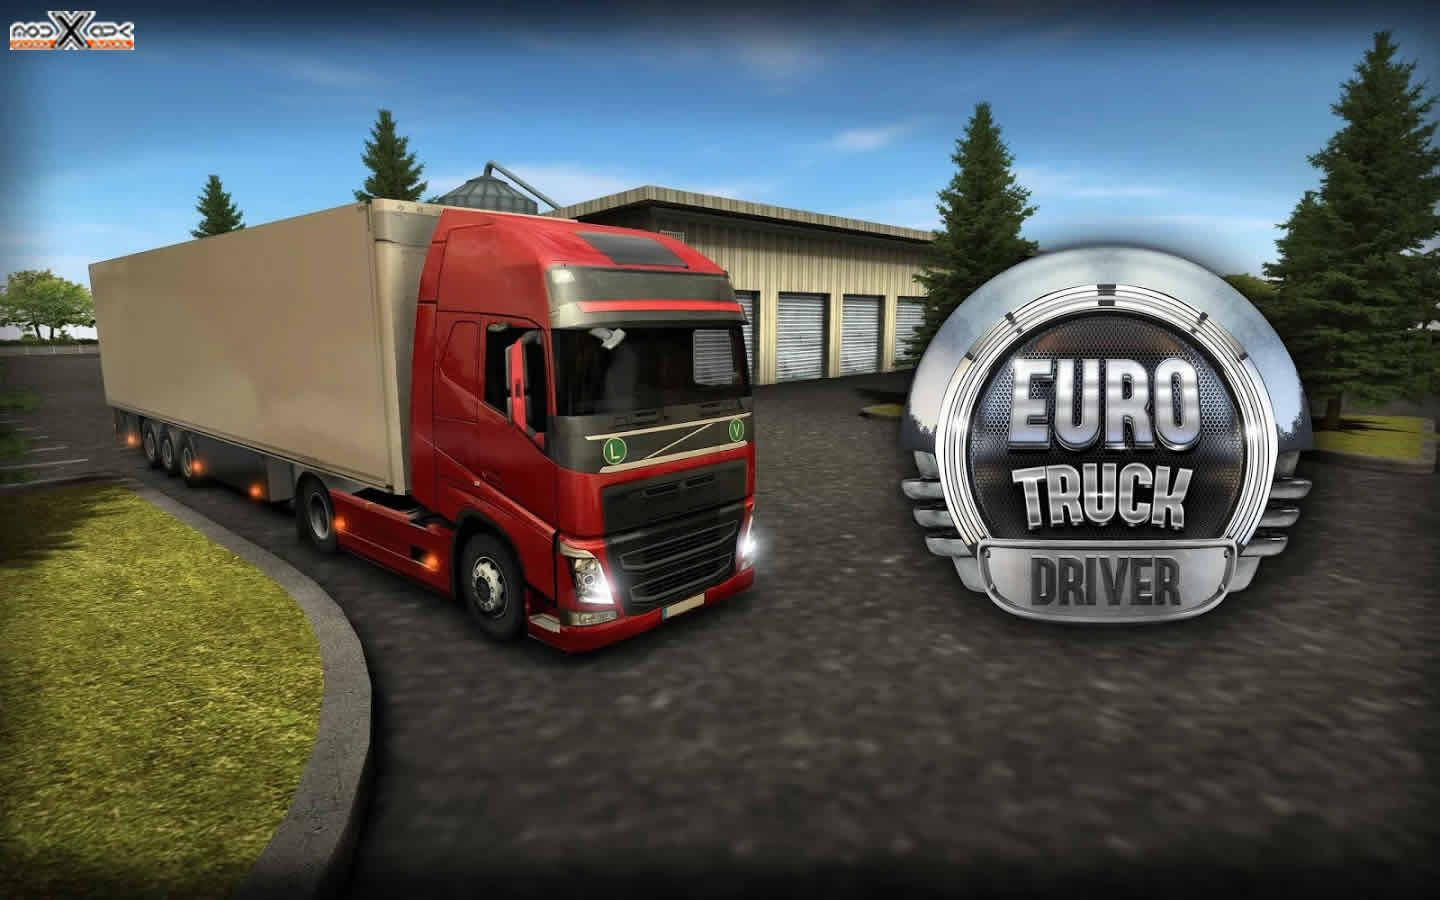 Euro truck driver v140 android apk hack mod descargar httpwww euro truck driver v140 android apk hack mod descargar http periodic tabletruck urtaz Gallery